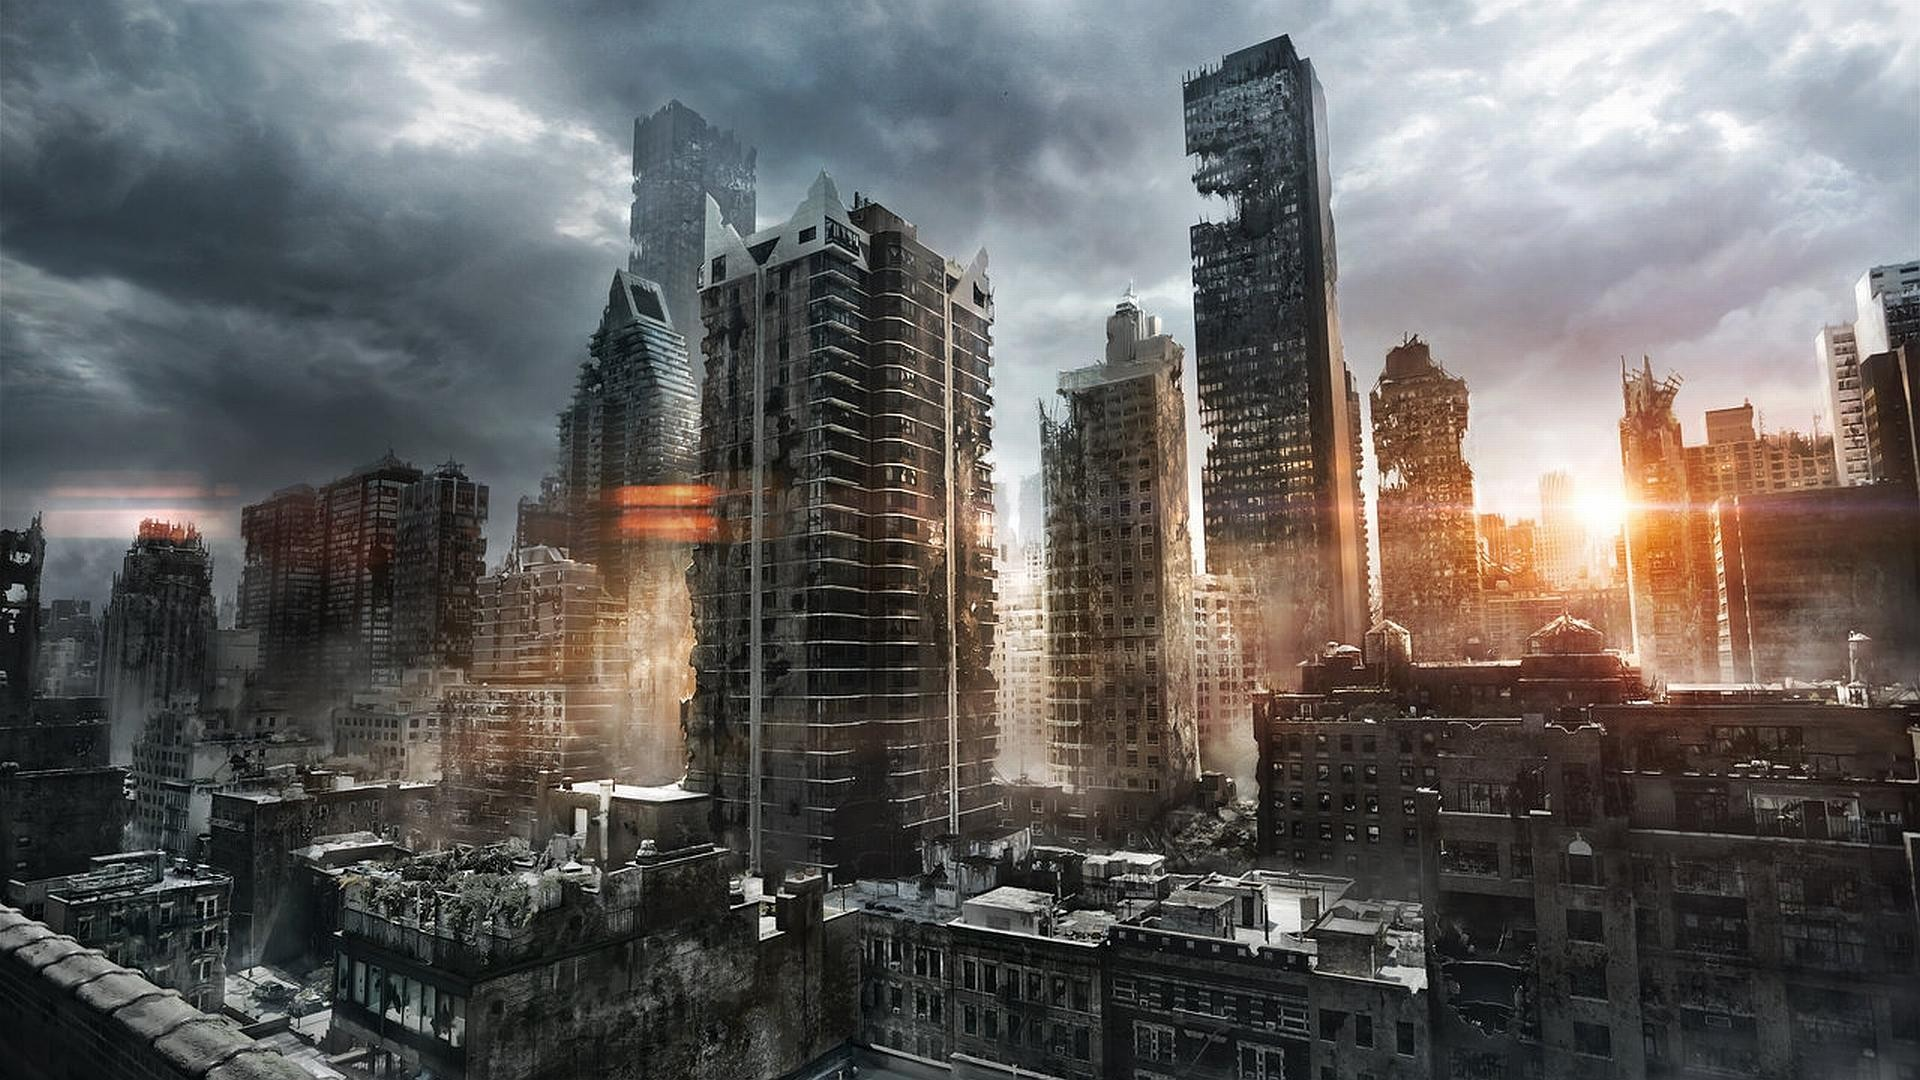 Apocalypse Wallpaper Download Free Awesome Hd Backgrounds For